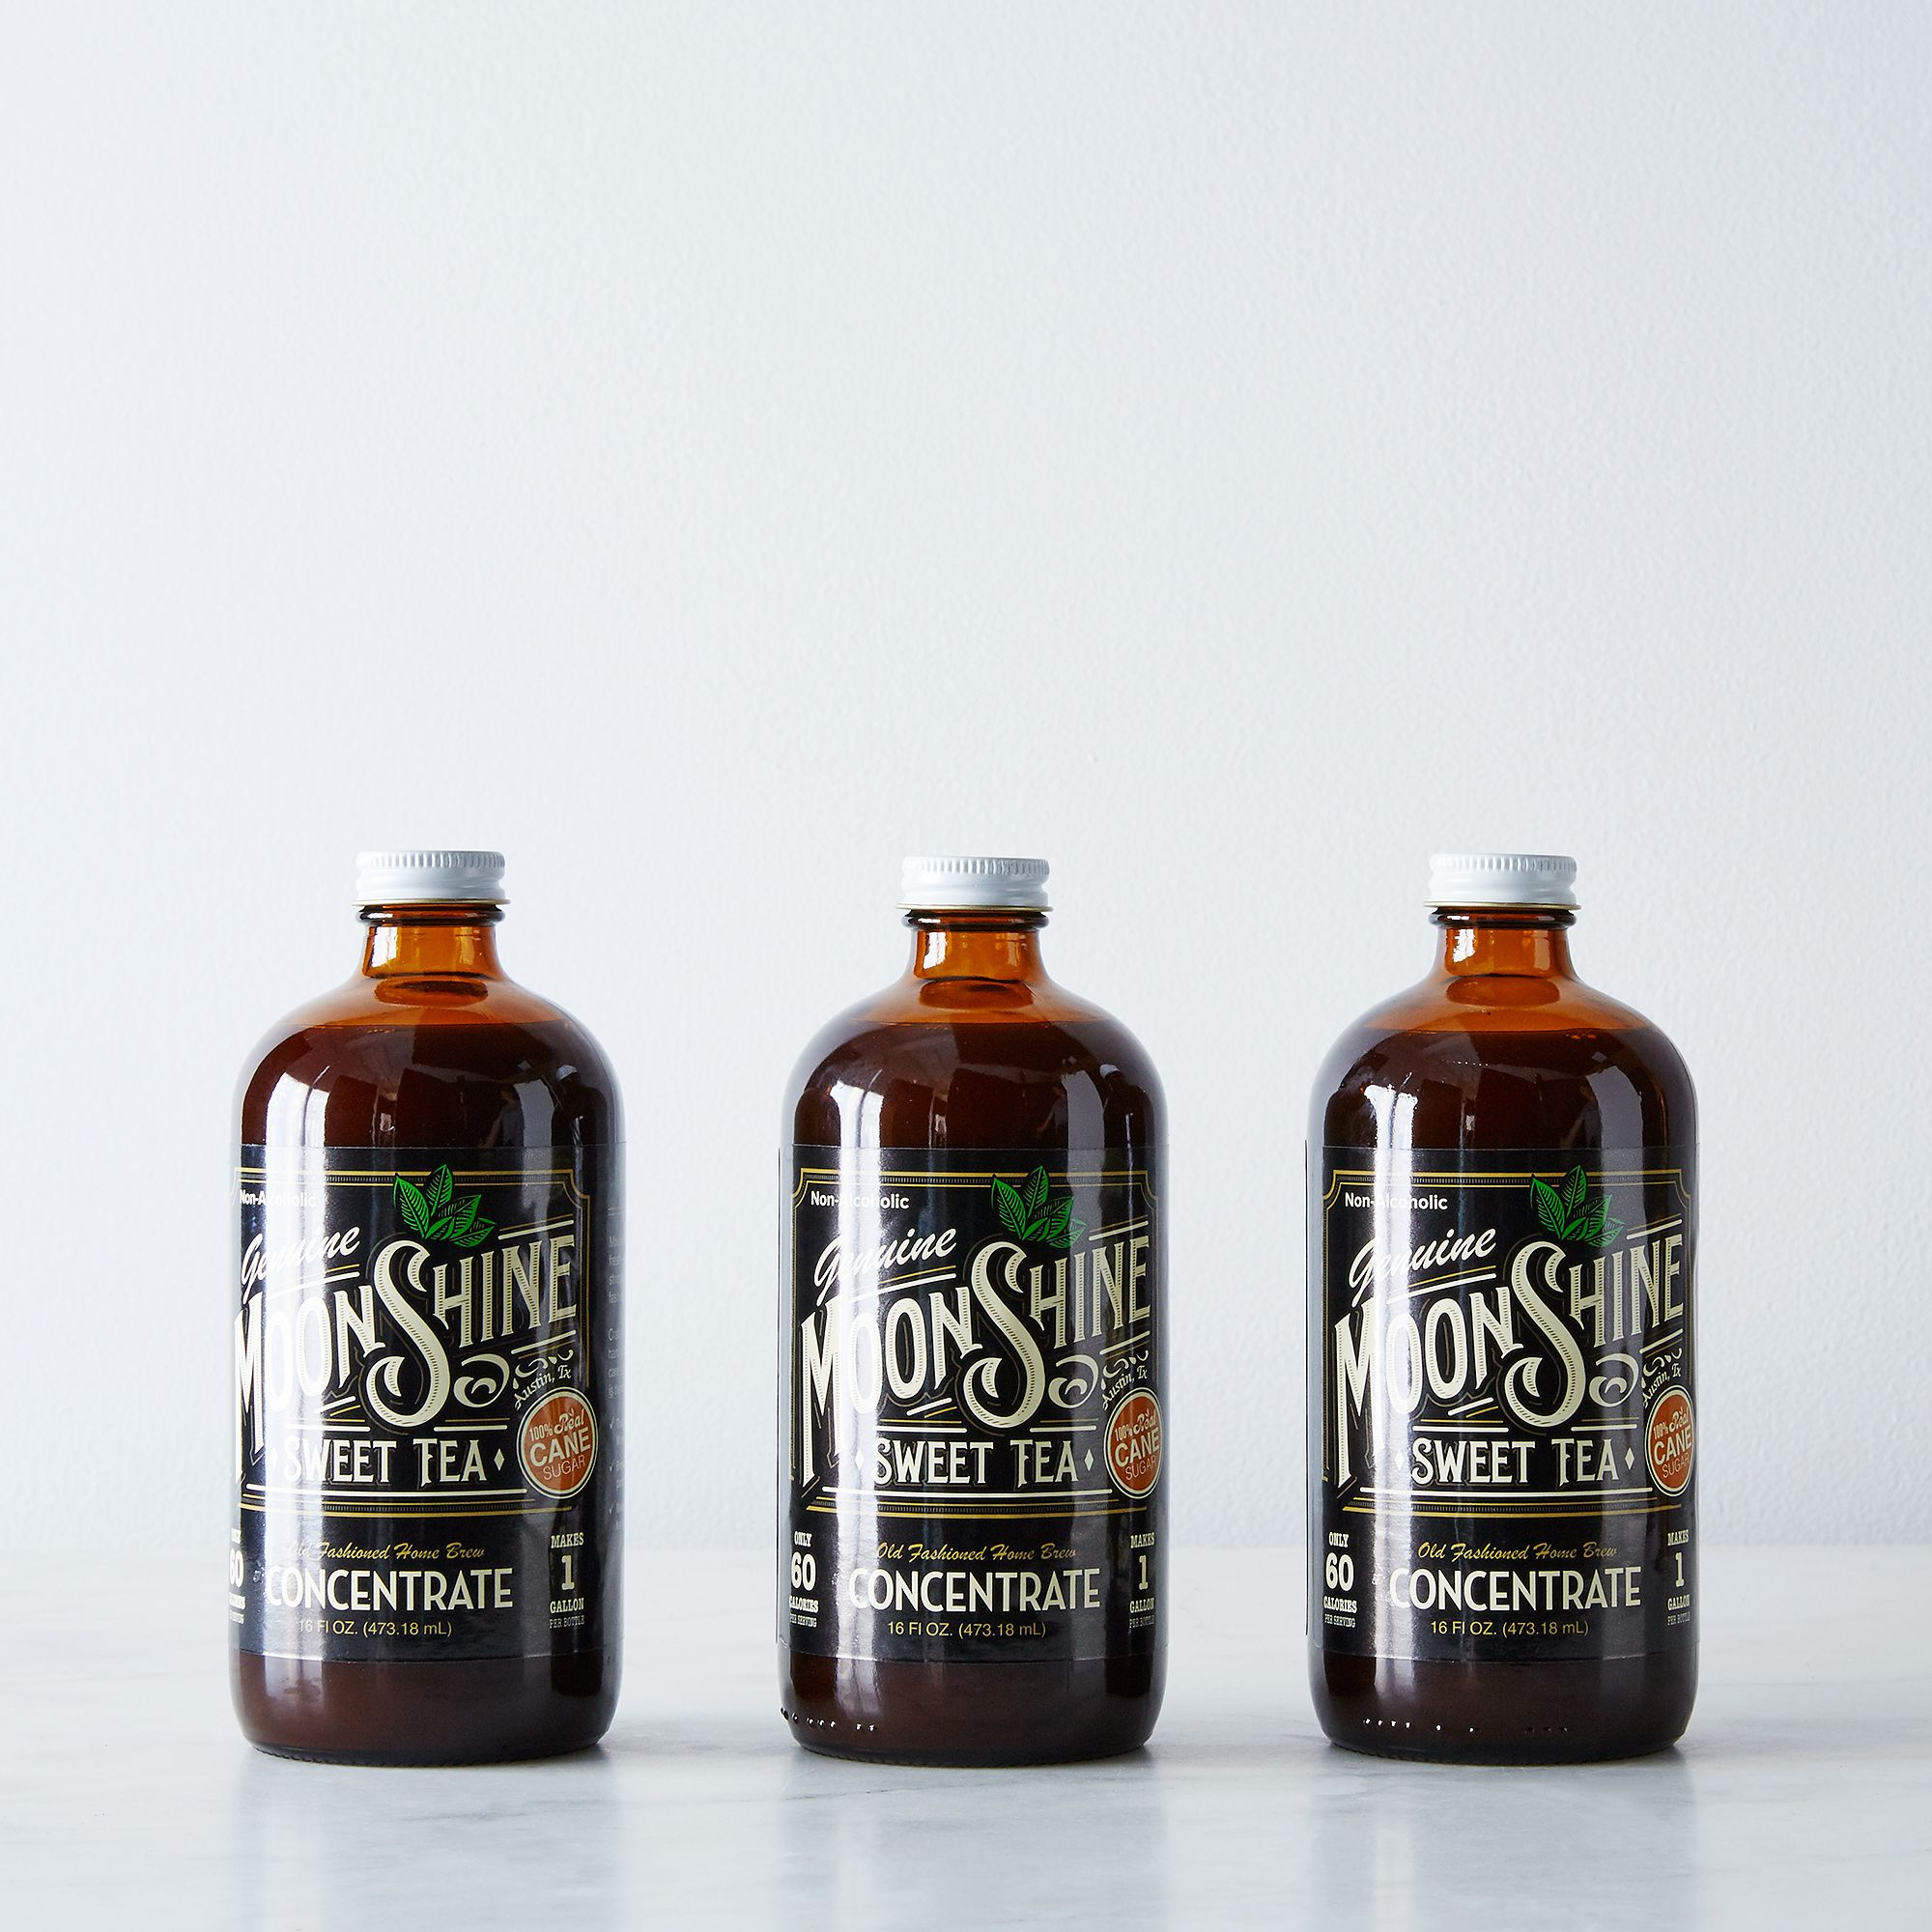 Edc81167-c905-4db7-93d5-22b45557f2bc--2015-0710_moonshine-sweet-tea_old-fashioned-sweet-tea-concentrate_set-of-3_silo_james-ransom-005